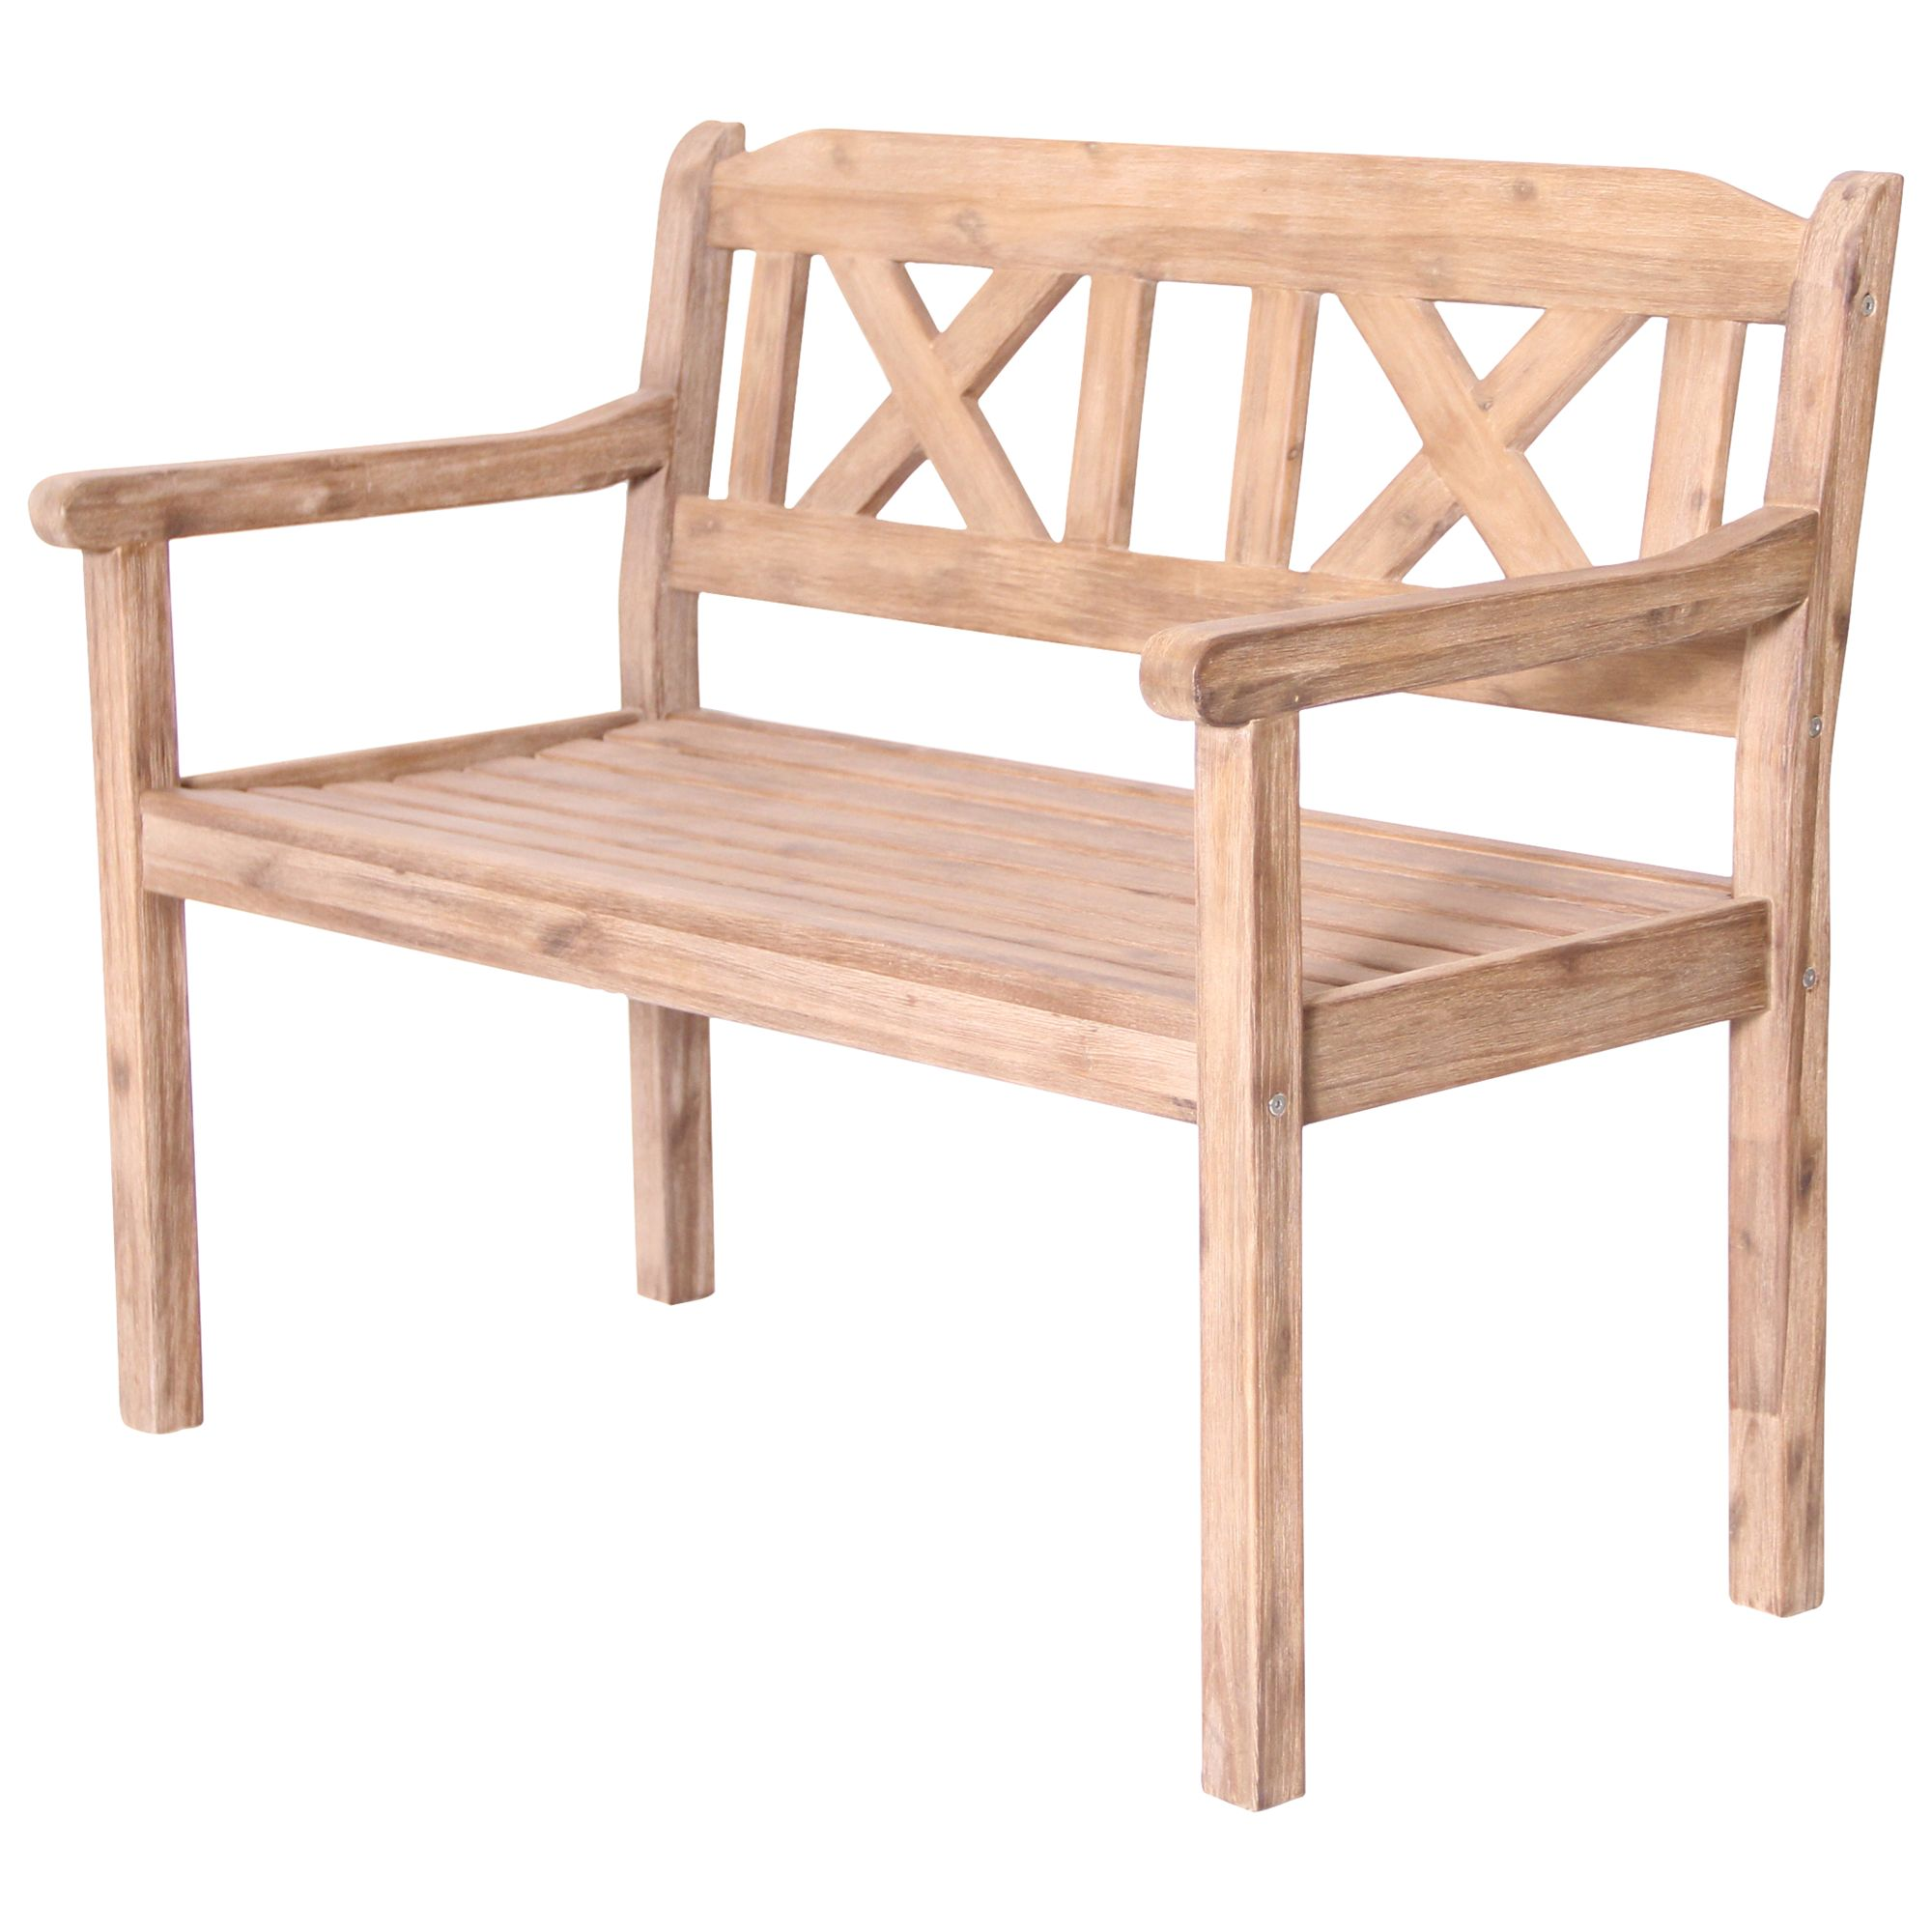 LG Outdoor LG Outdoor Hanoi 2-Seat Crossback Bench, FSC-certified (Acacia)